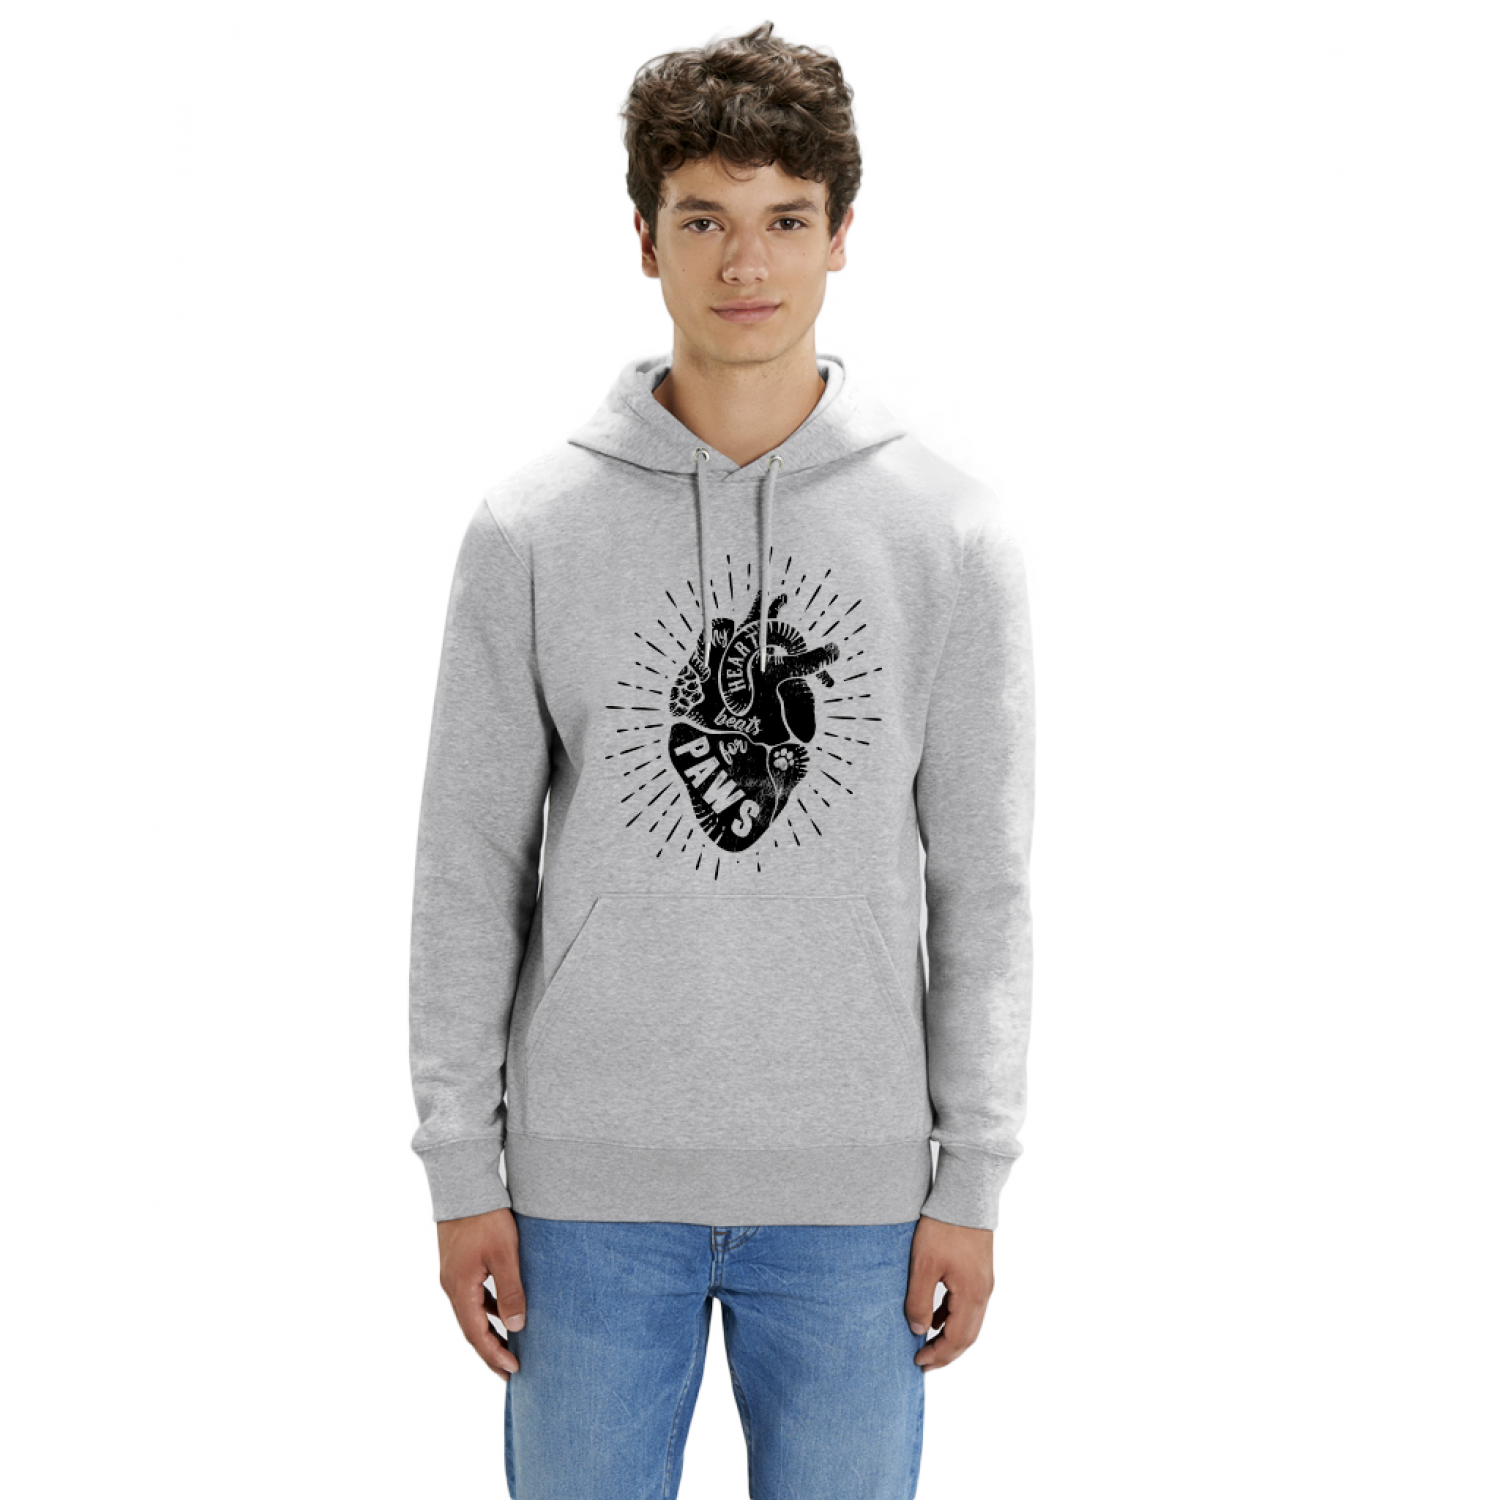 HEART FOR PAWS Hoodie (Charity Project)